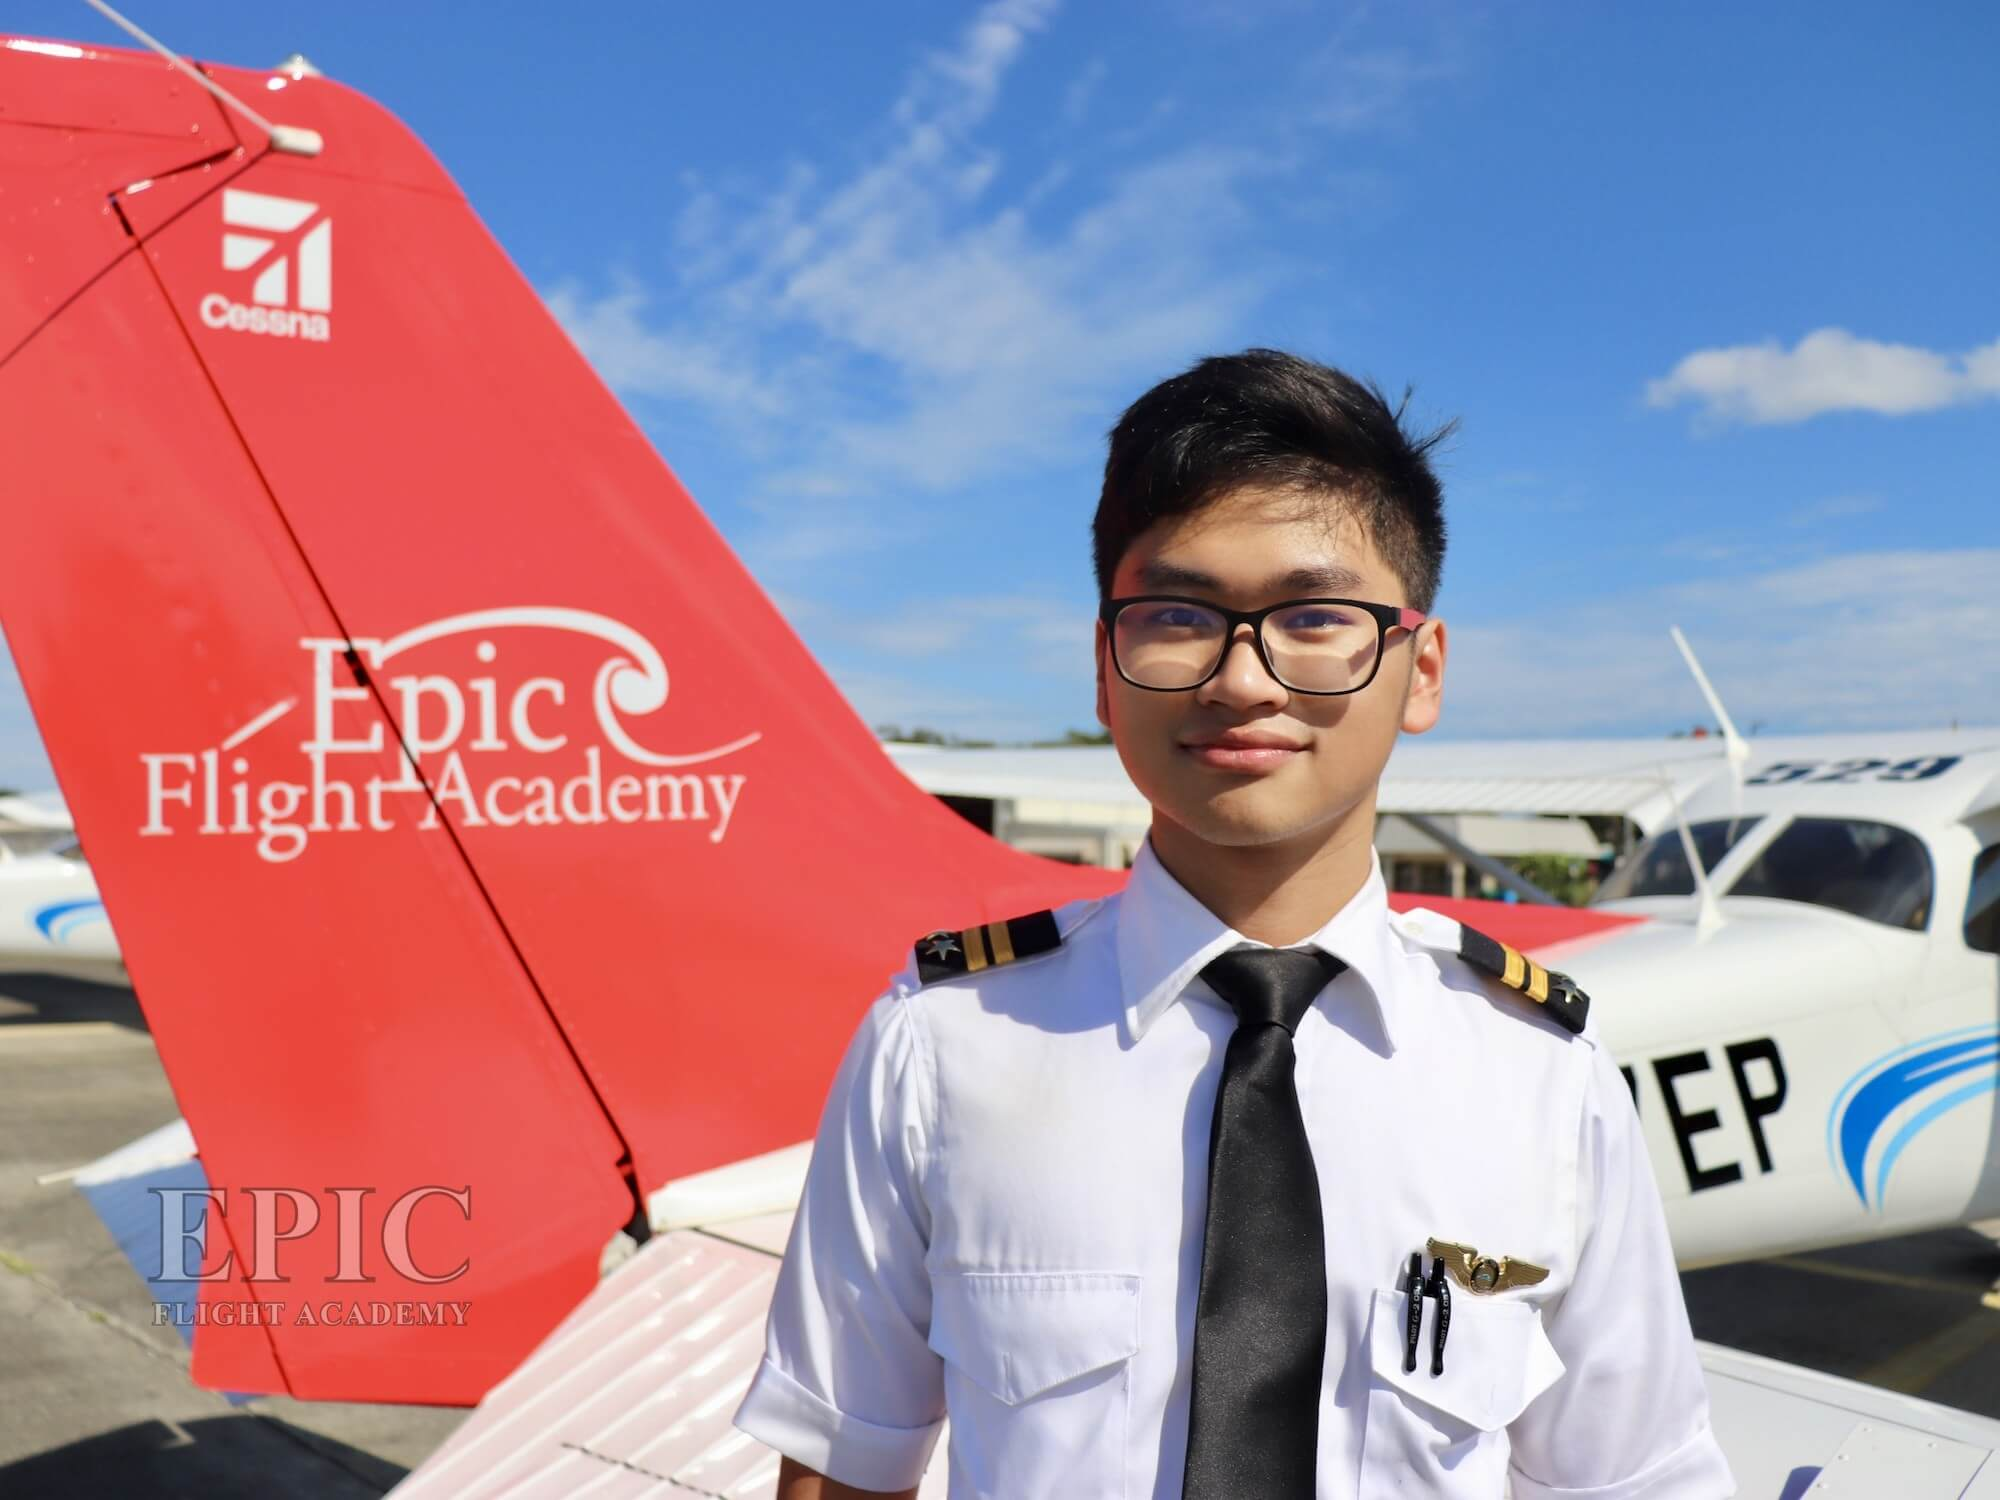 Reachta Lim earned his Instrument Rating